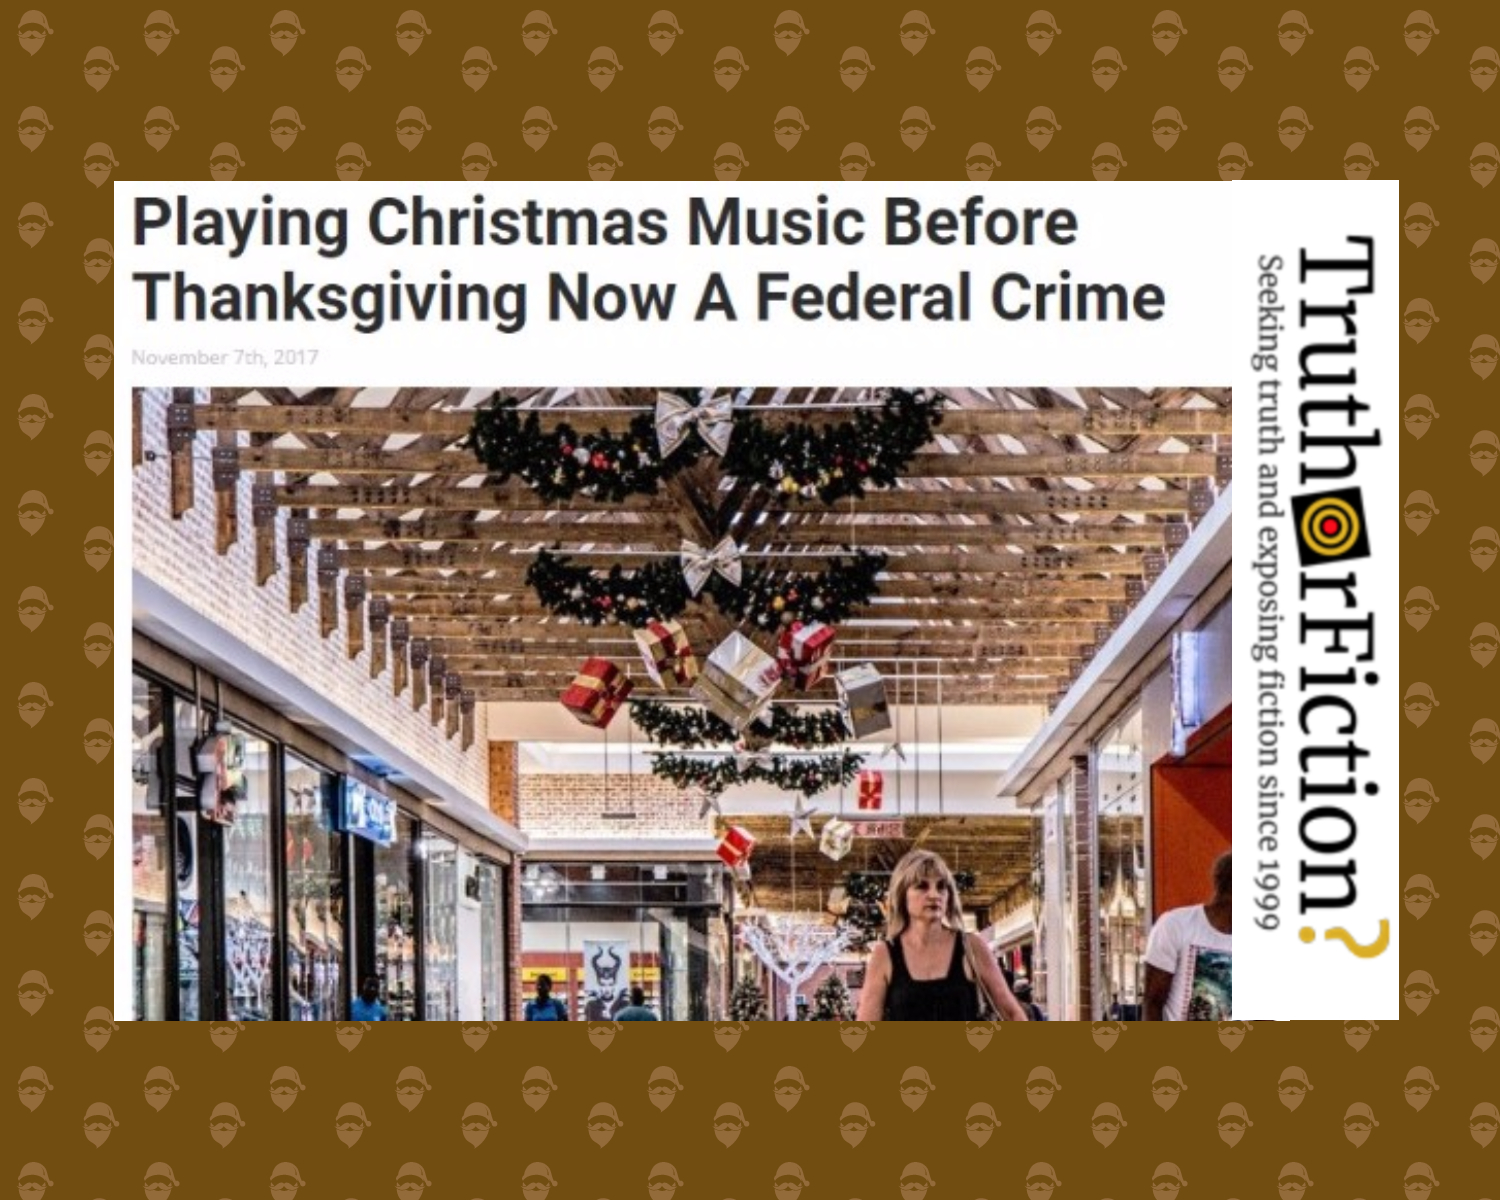 Playing Christmas Music Before Thanksgiving Is a Federal Crime?